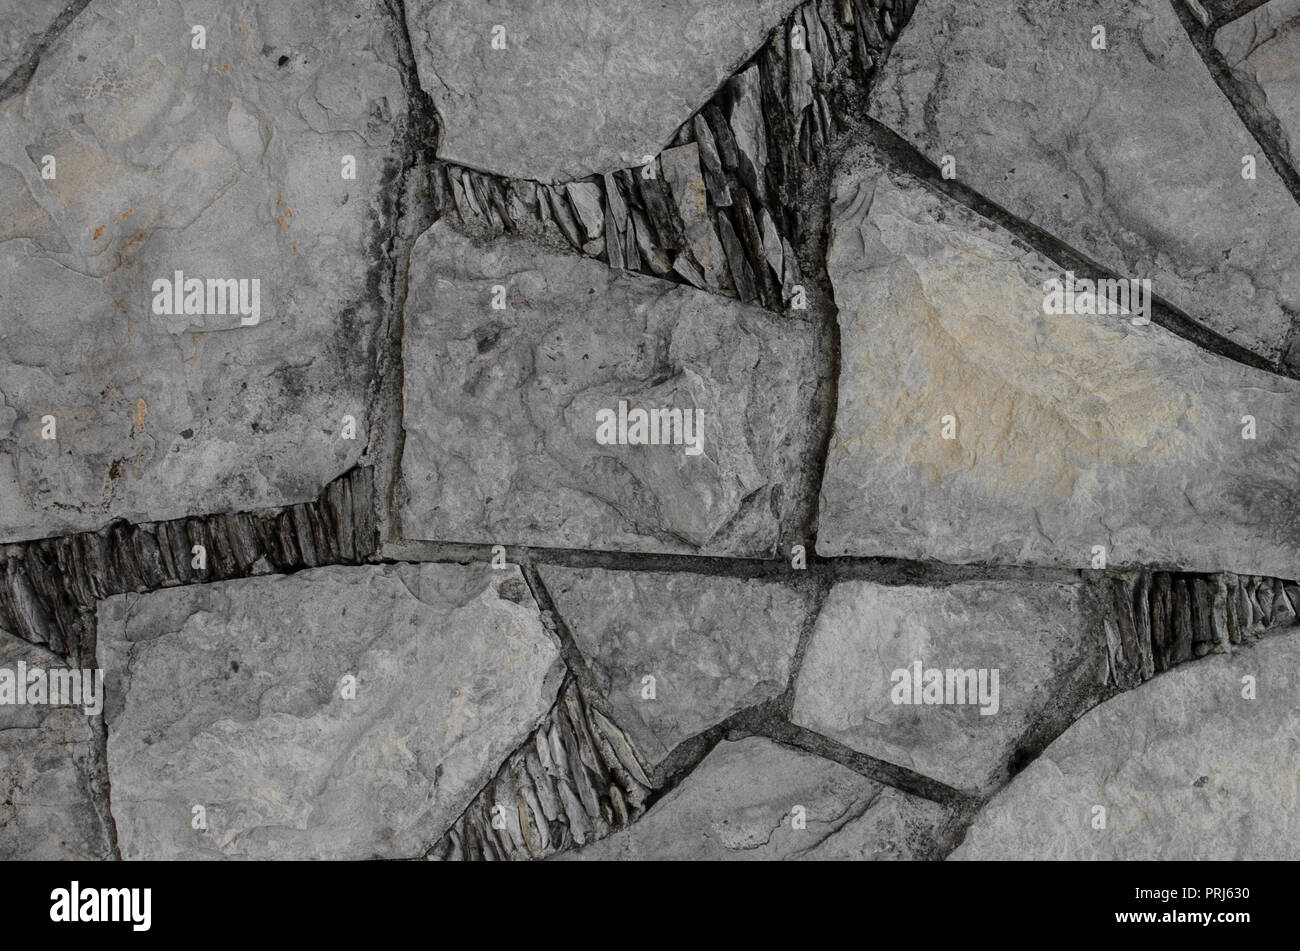 Wall with broken pieces of stones in geometric shapes, natural decorative background. - Stock Image